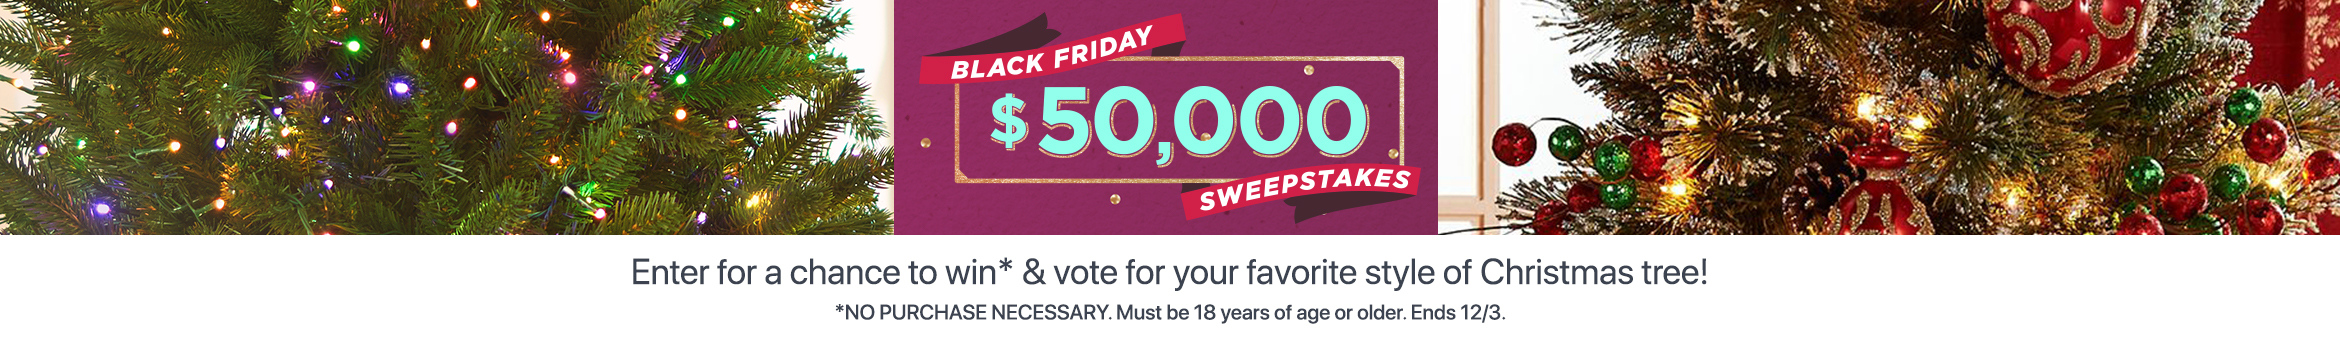 Black Friday $50,000 Sweepstakes   Enter for a chance to win* & vote for your favorite style of Christmas tree!  *NO PURCHASE NECESSARY. Must be 18 years of age or older. Ends 12/3.